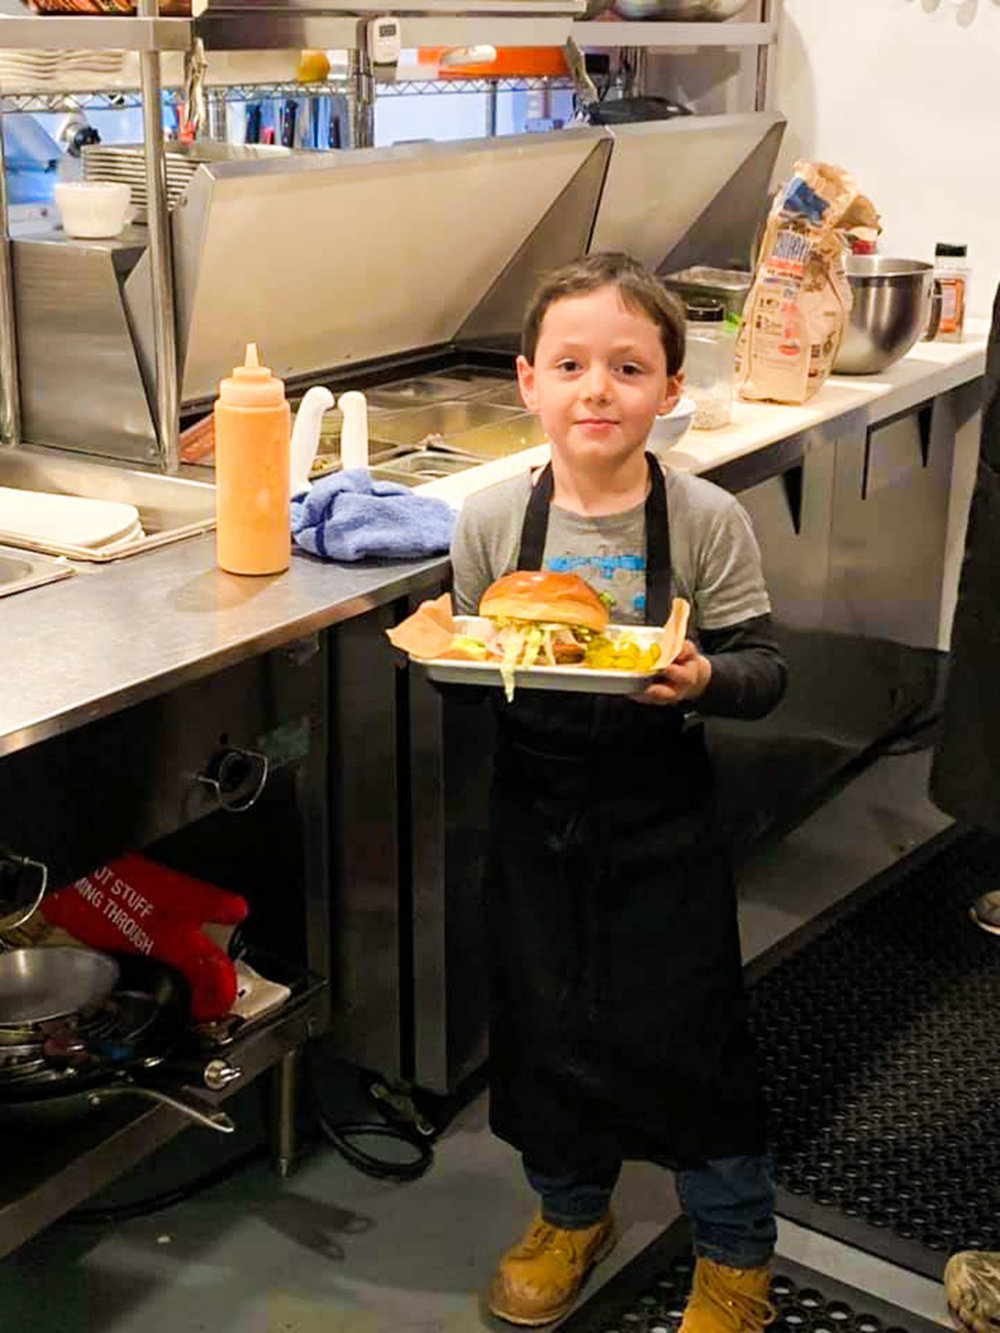 John and Regine's son, Sam, helps in the kitchen